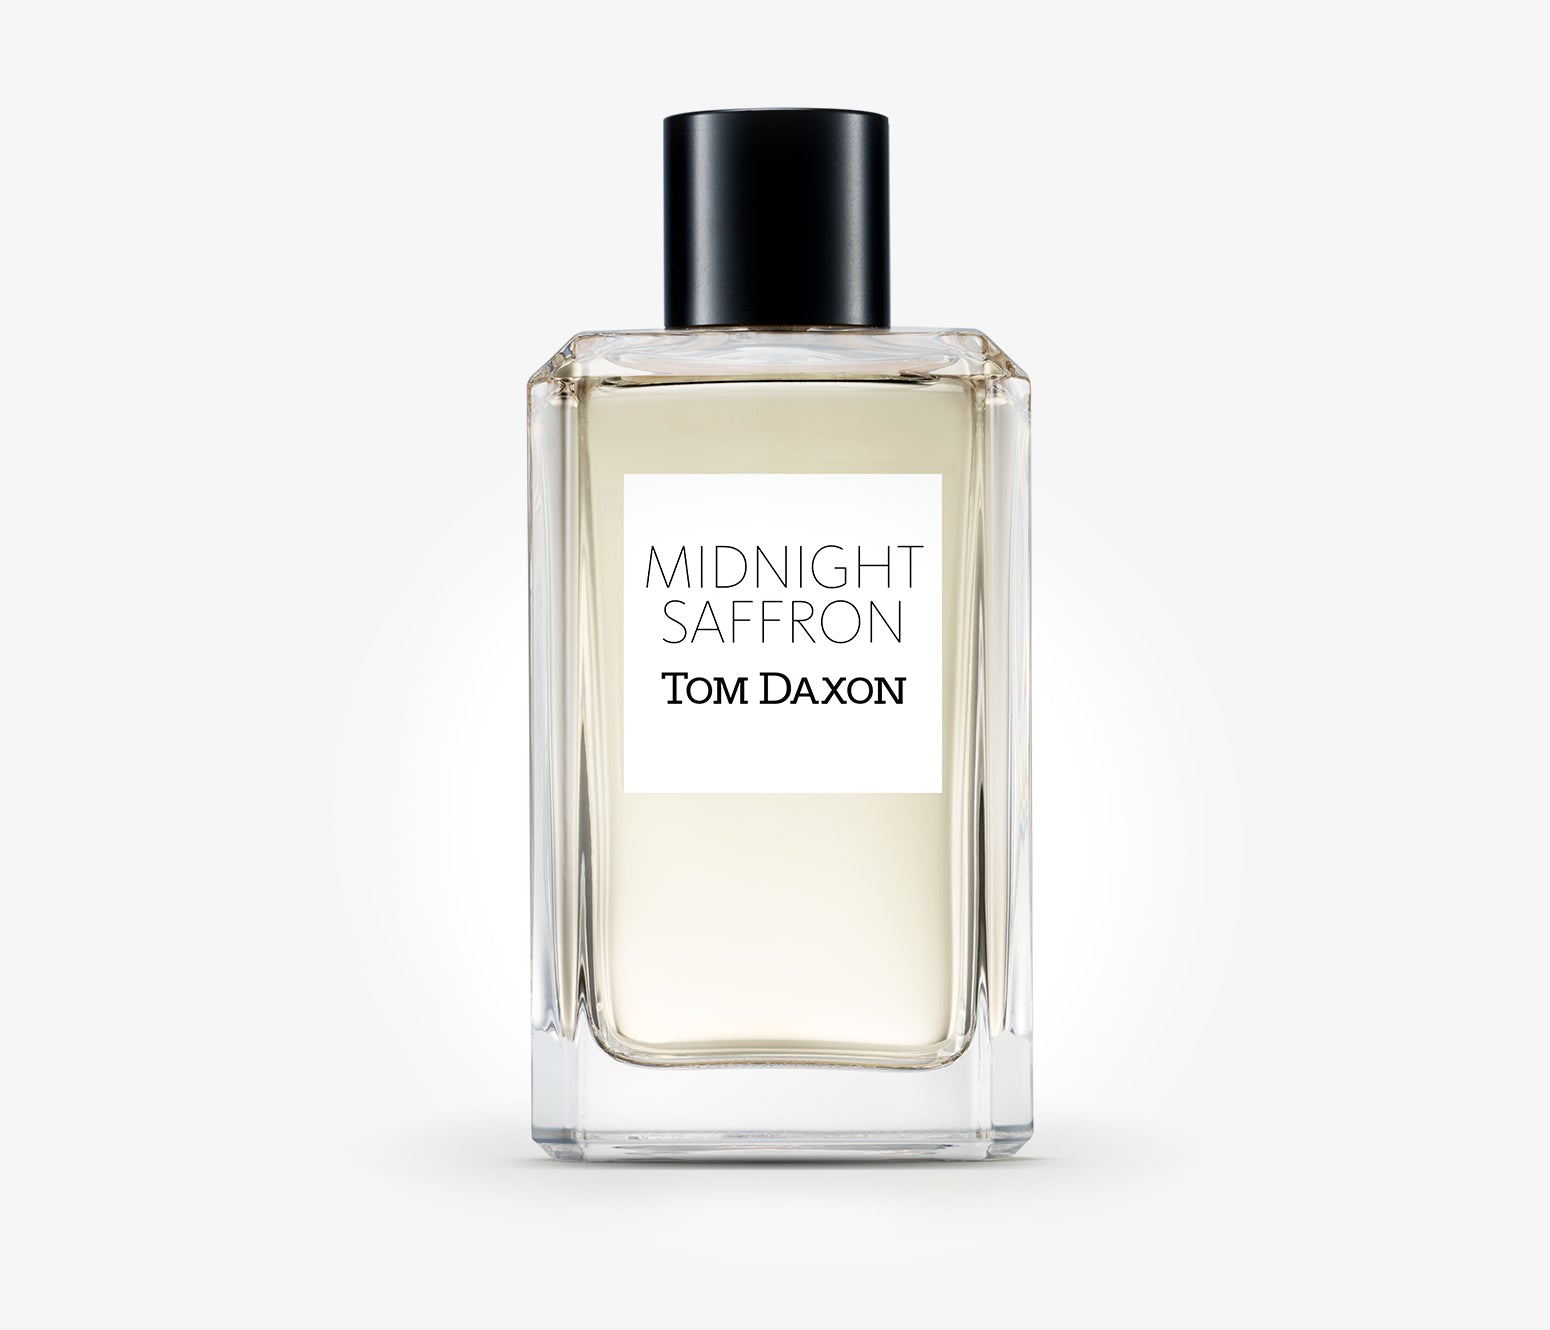 Tom Daxon - Midnight Saffron - 100ml - WSF1680 - product image - Fragrance - Les Senteurs